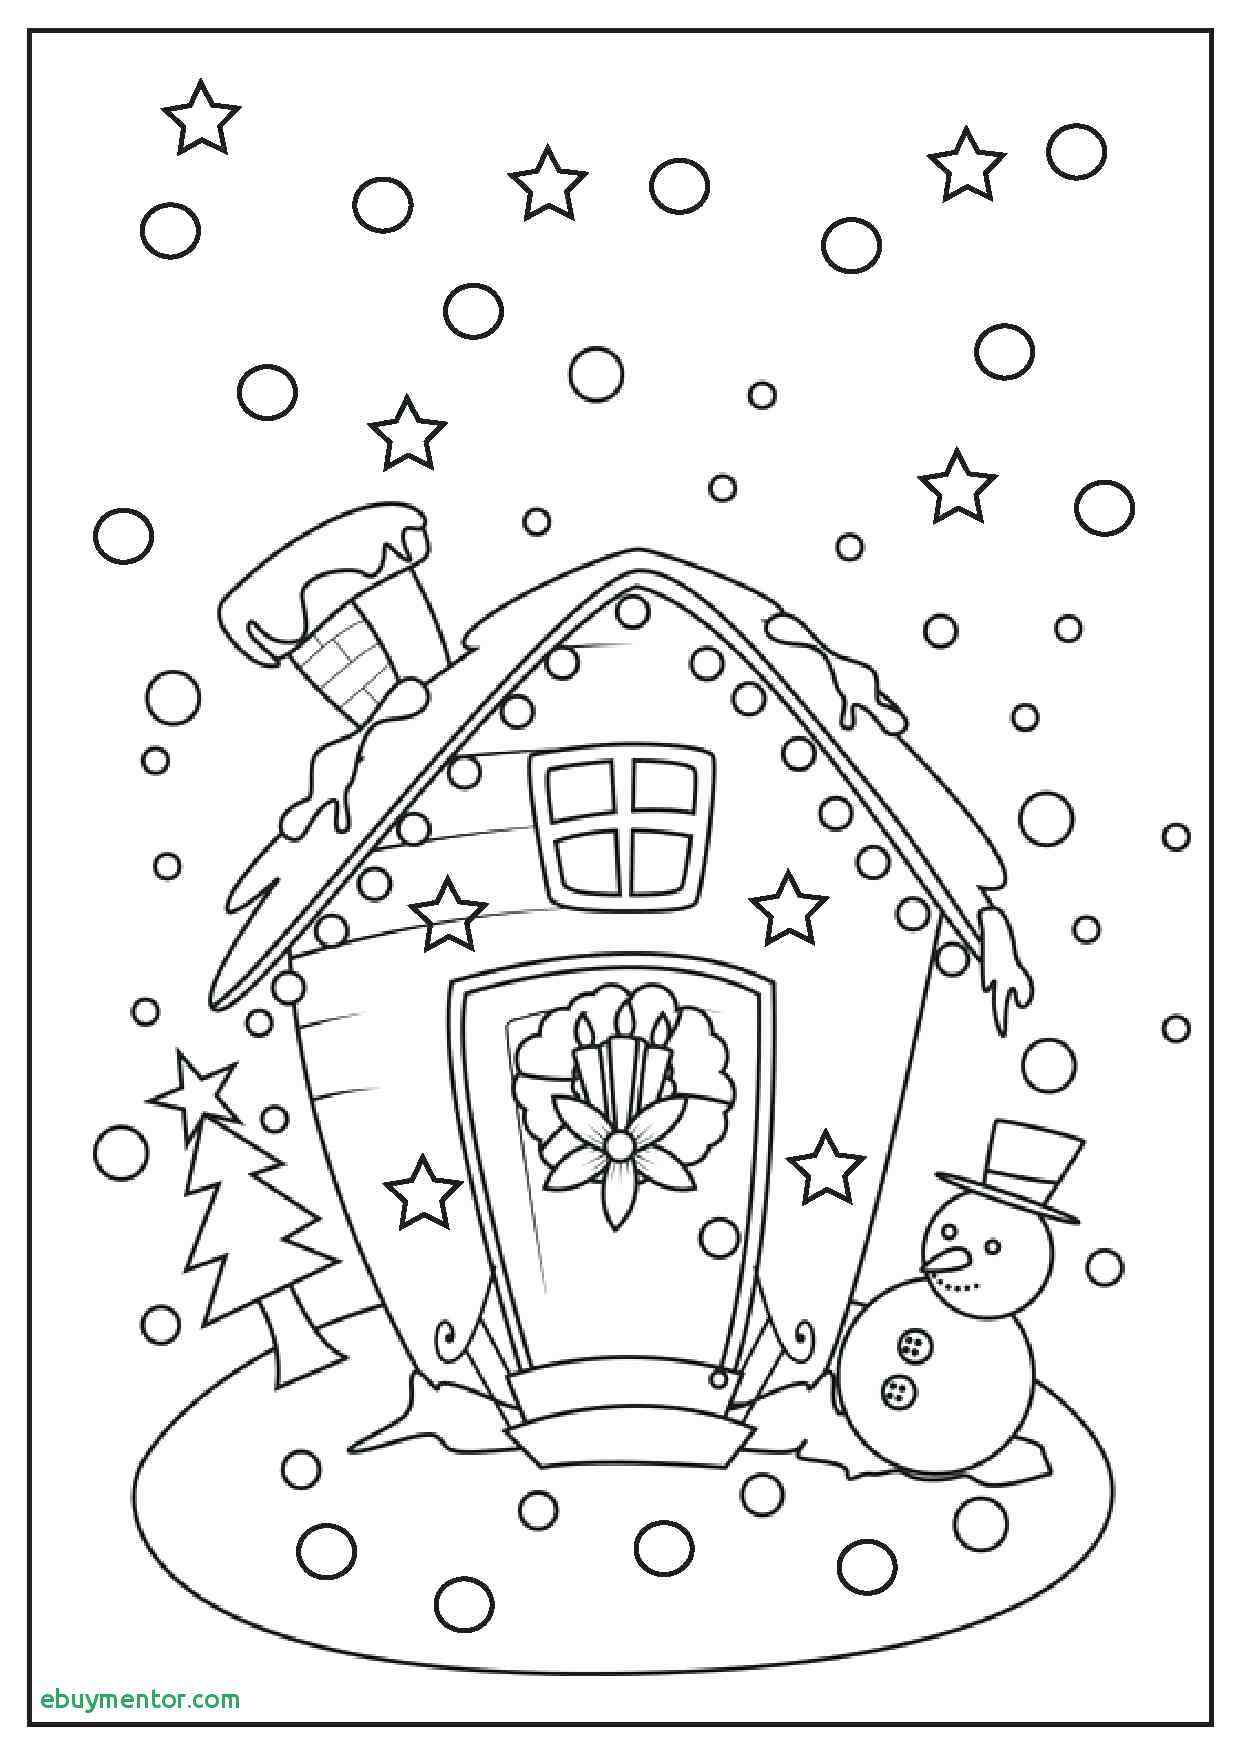 christmas ornament coloring pages Collection-Published September 20 2018 at 1240 — 1754 in Elegant Christmas Decorations for Kids to Color 13-f